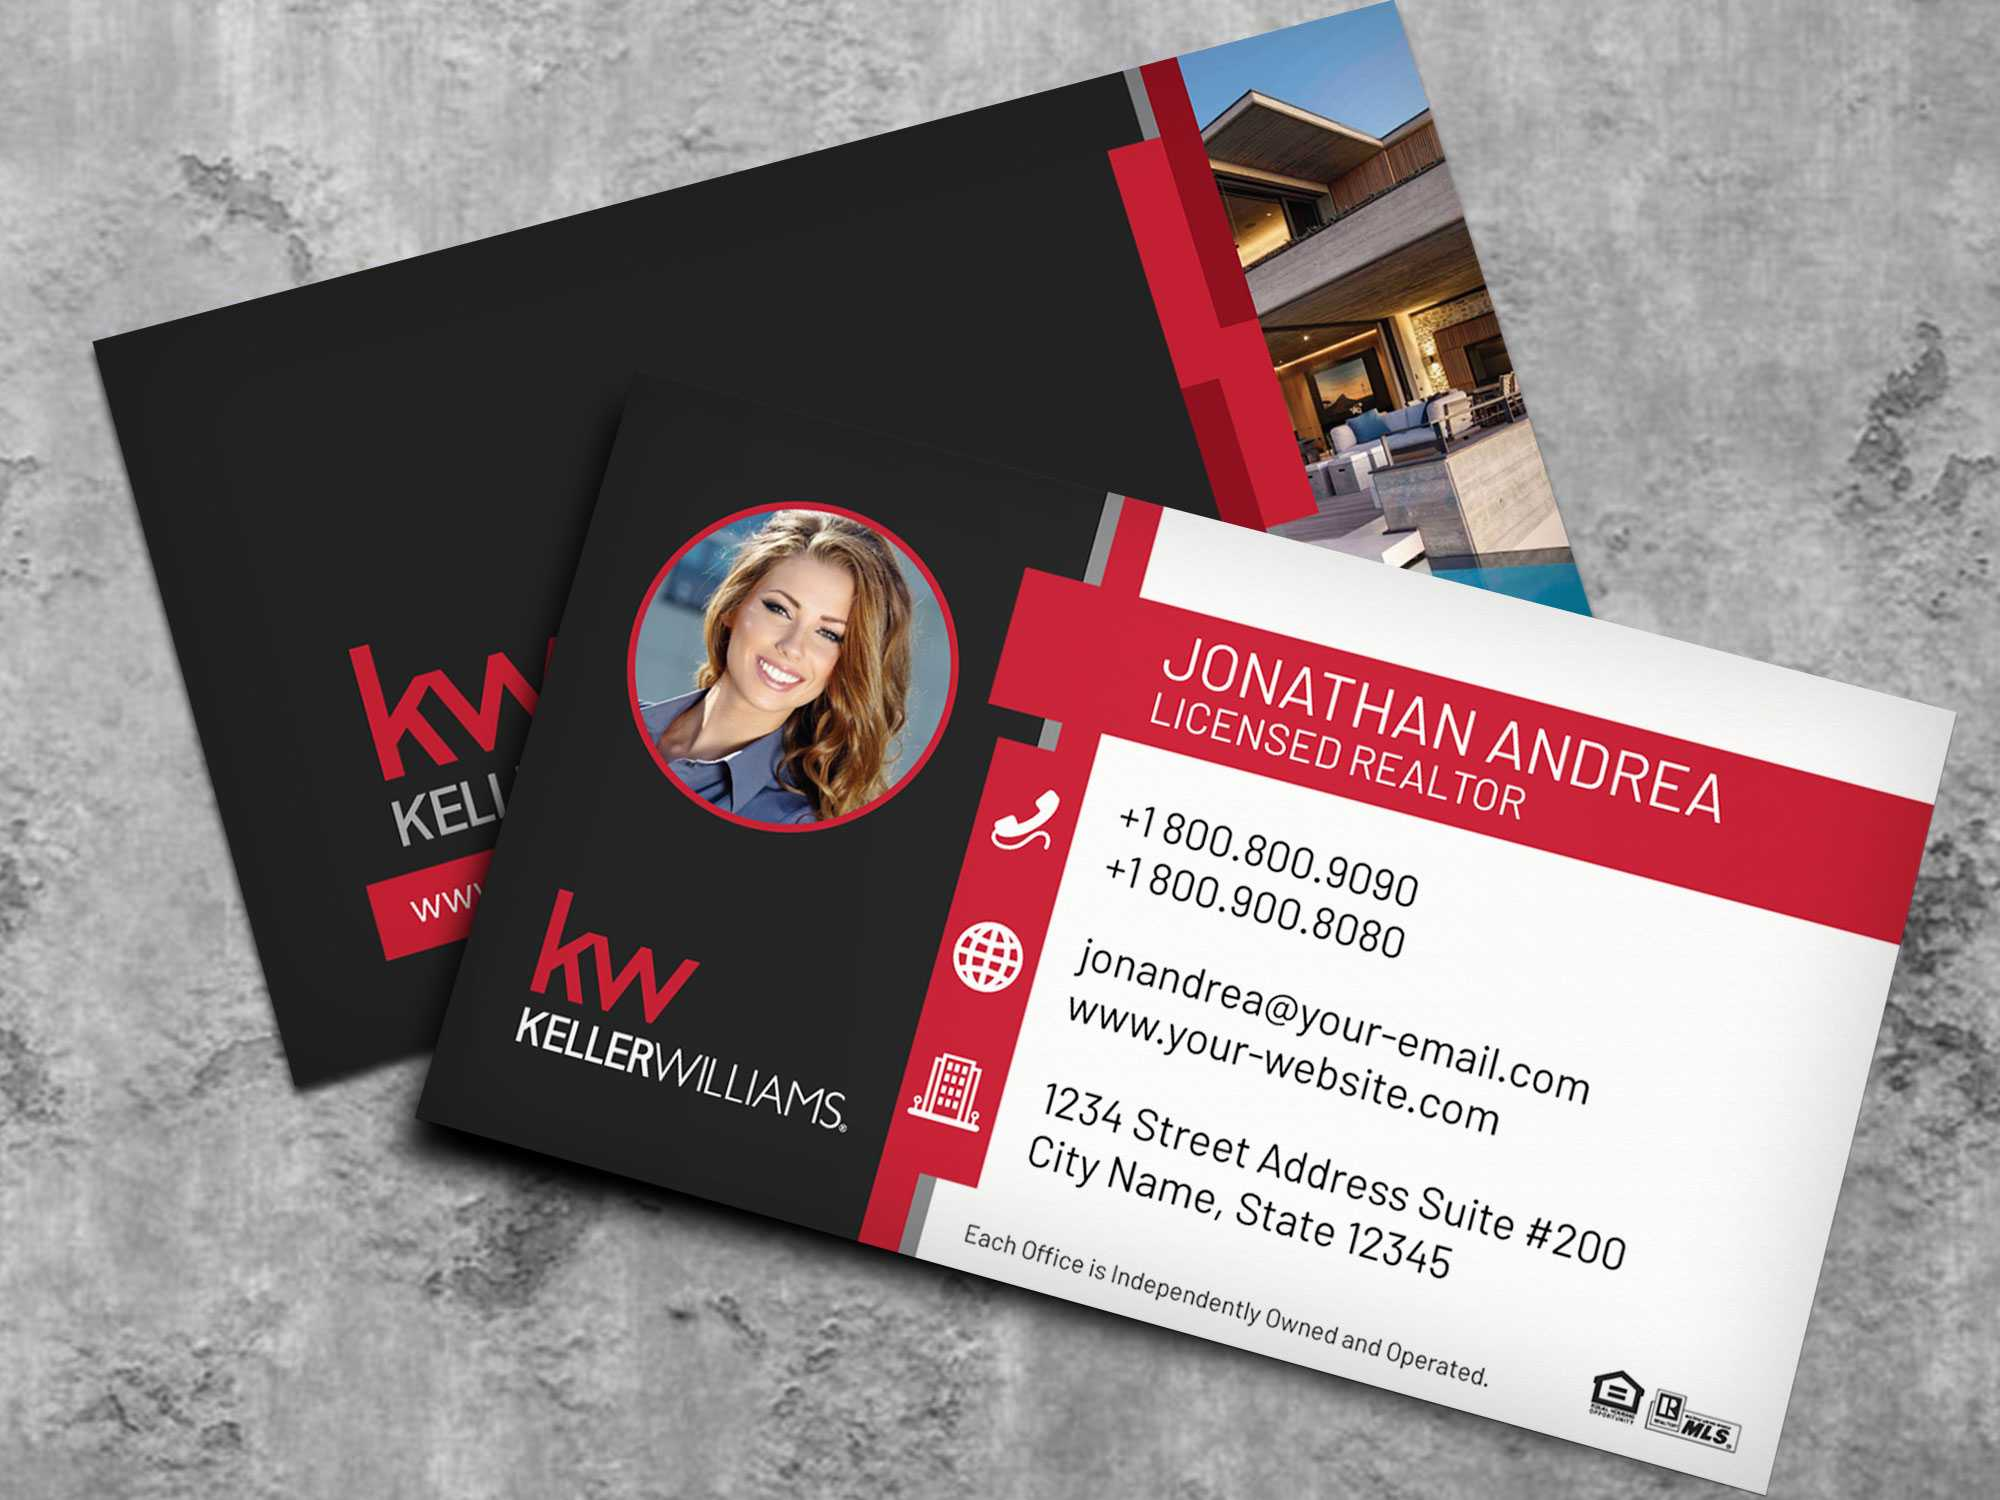 Keller Williams Business Card Template Bc19702Kw - Nusacreative Inside Keller Williams Business Card Templates